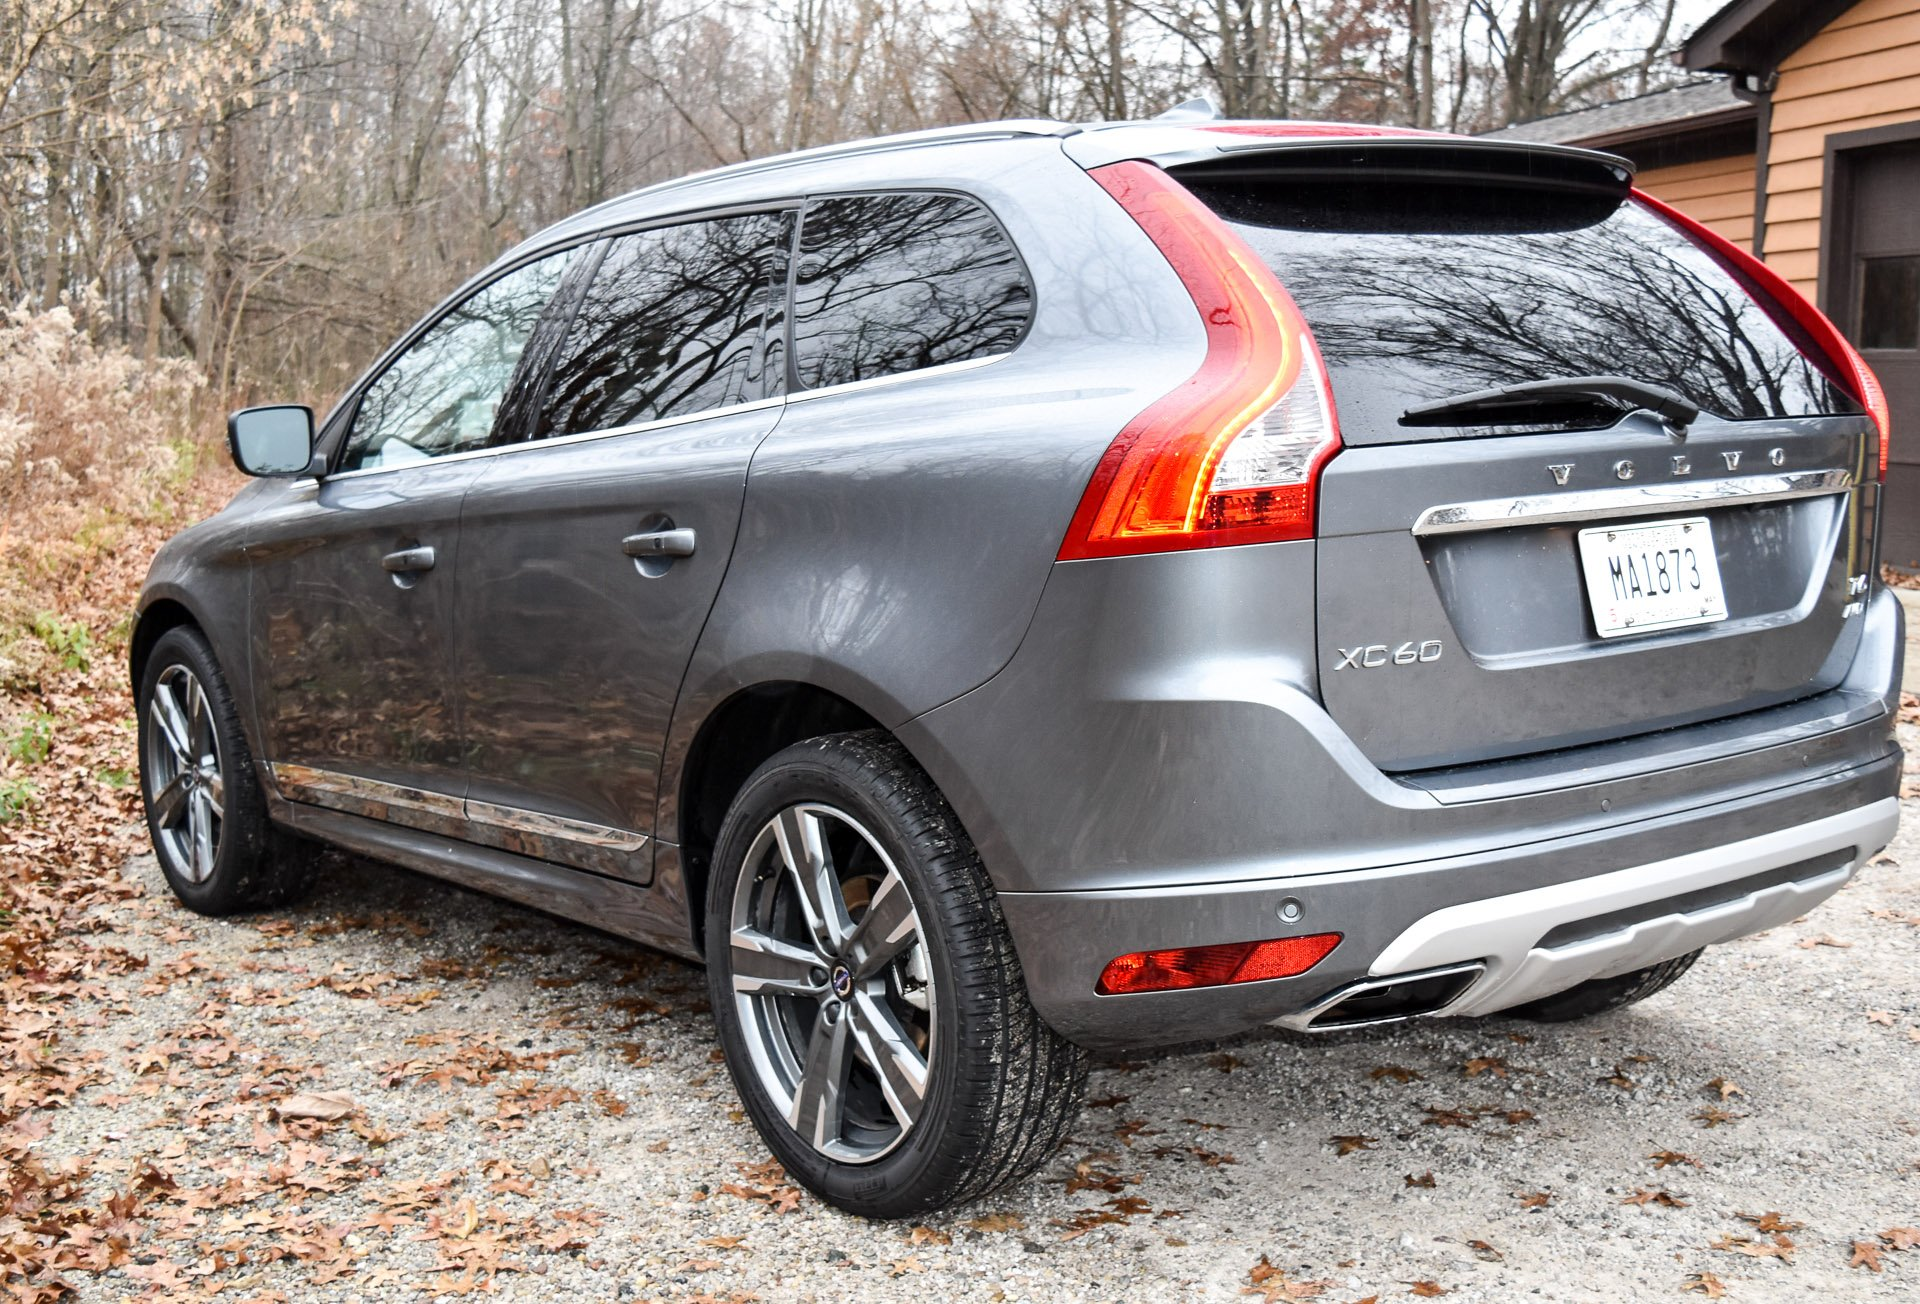 Review 2017 Volvo XC60 T6 Dynamic - 95 Octane